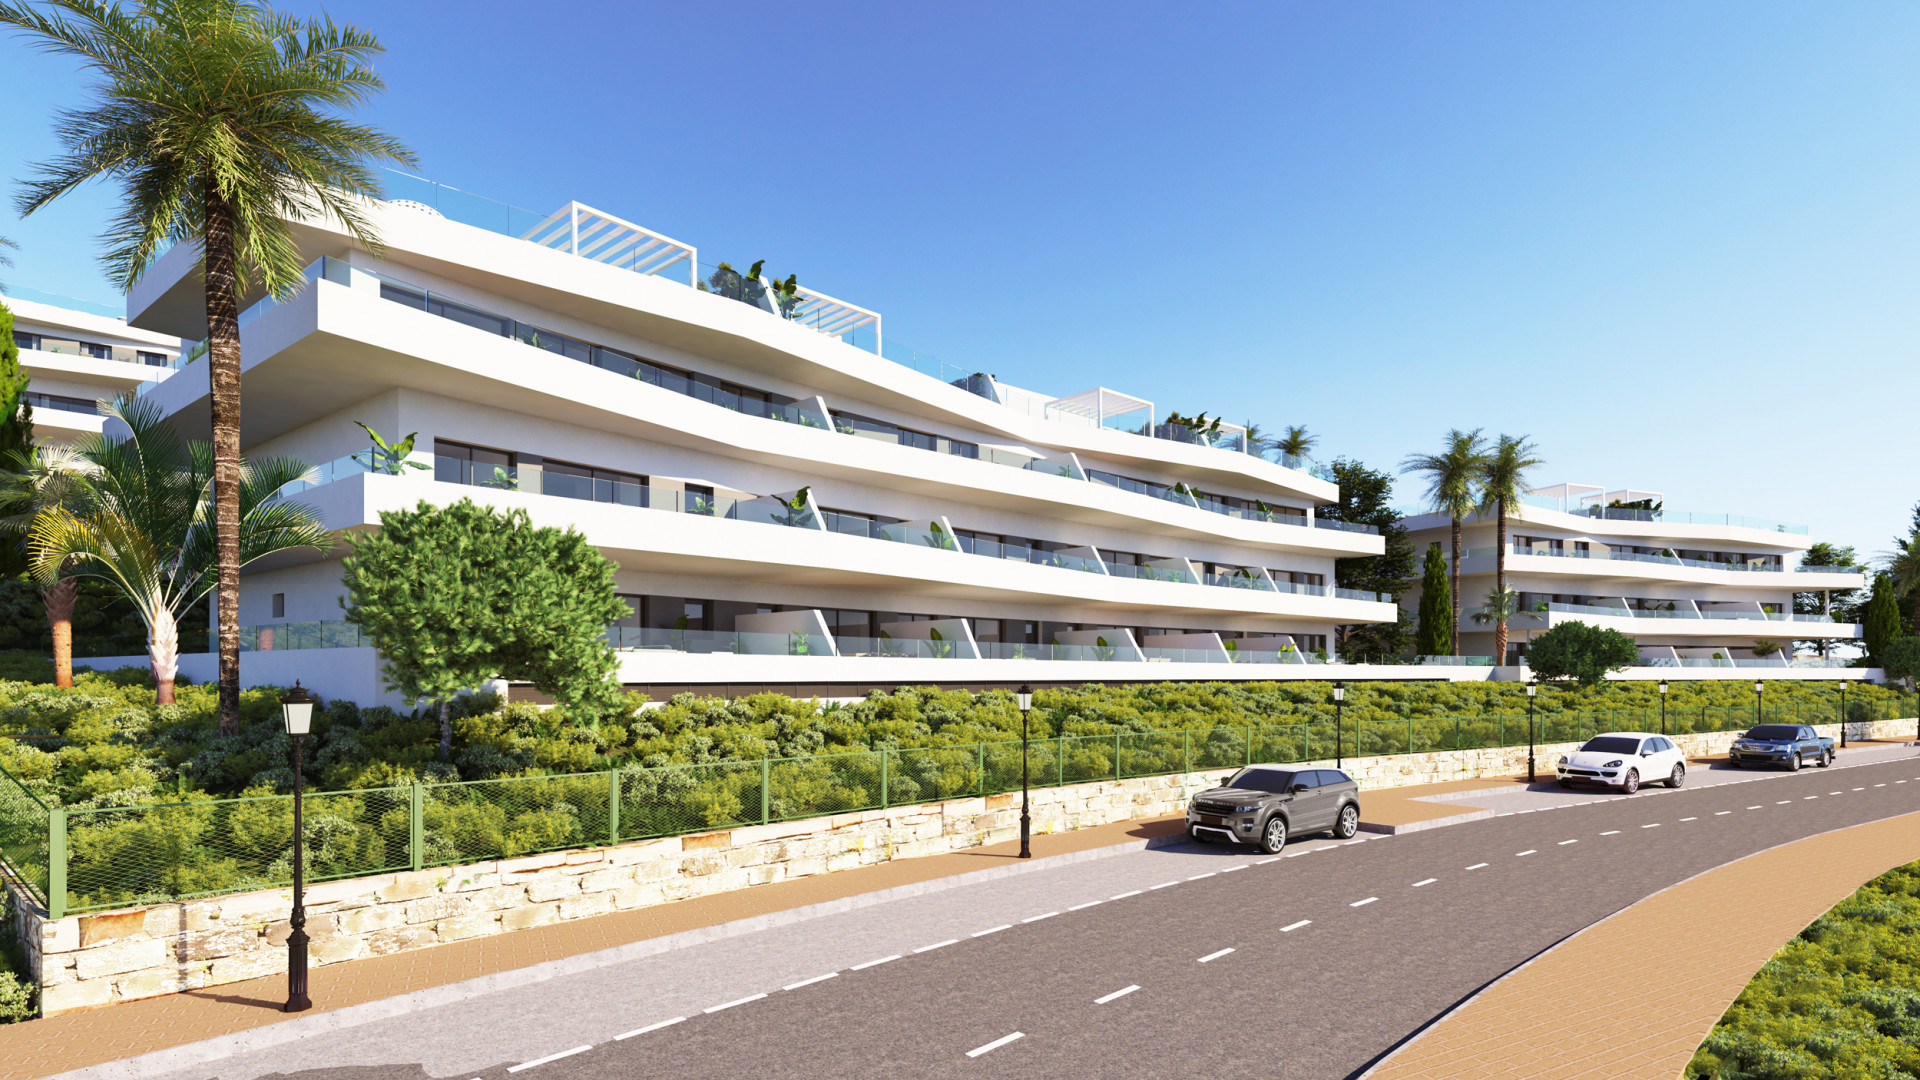 Contemporary apartments and penthouses with sea views for sale in Estepona.